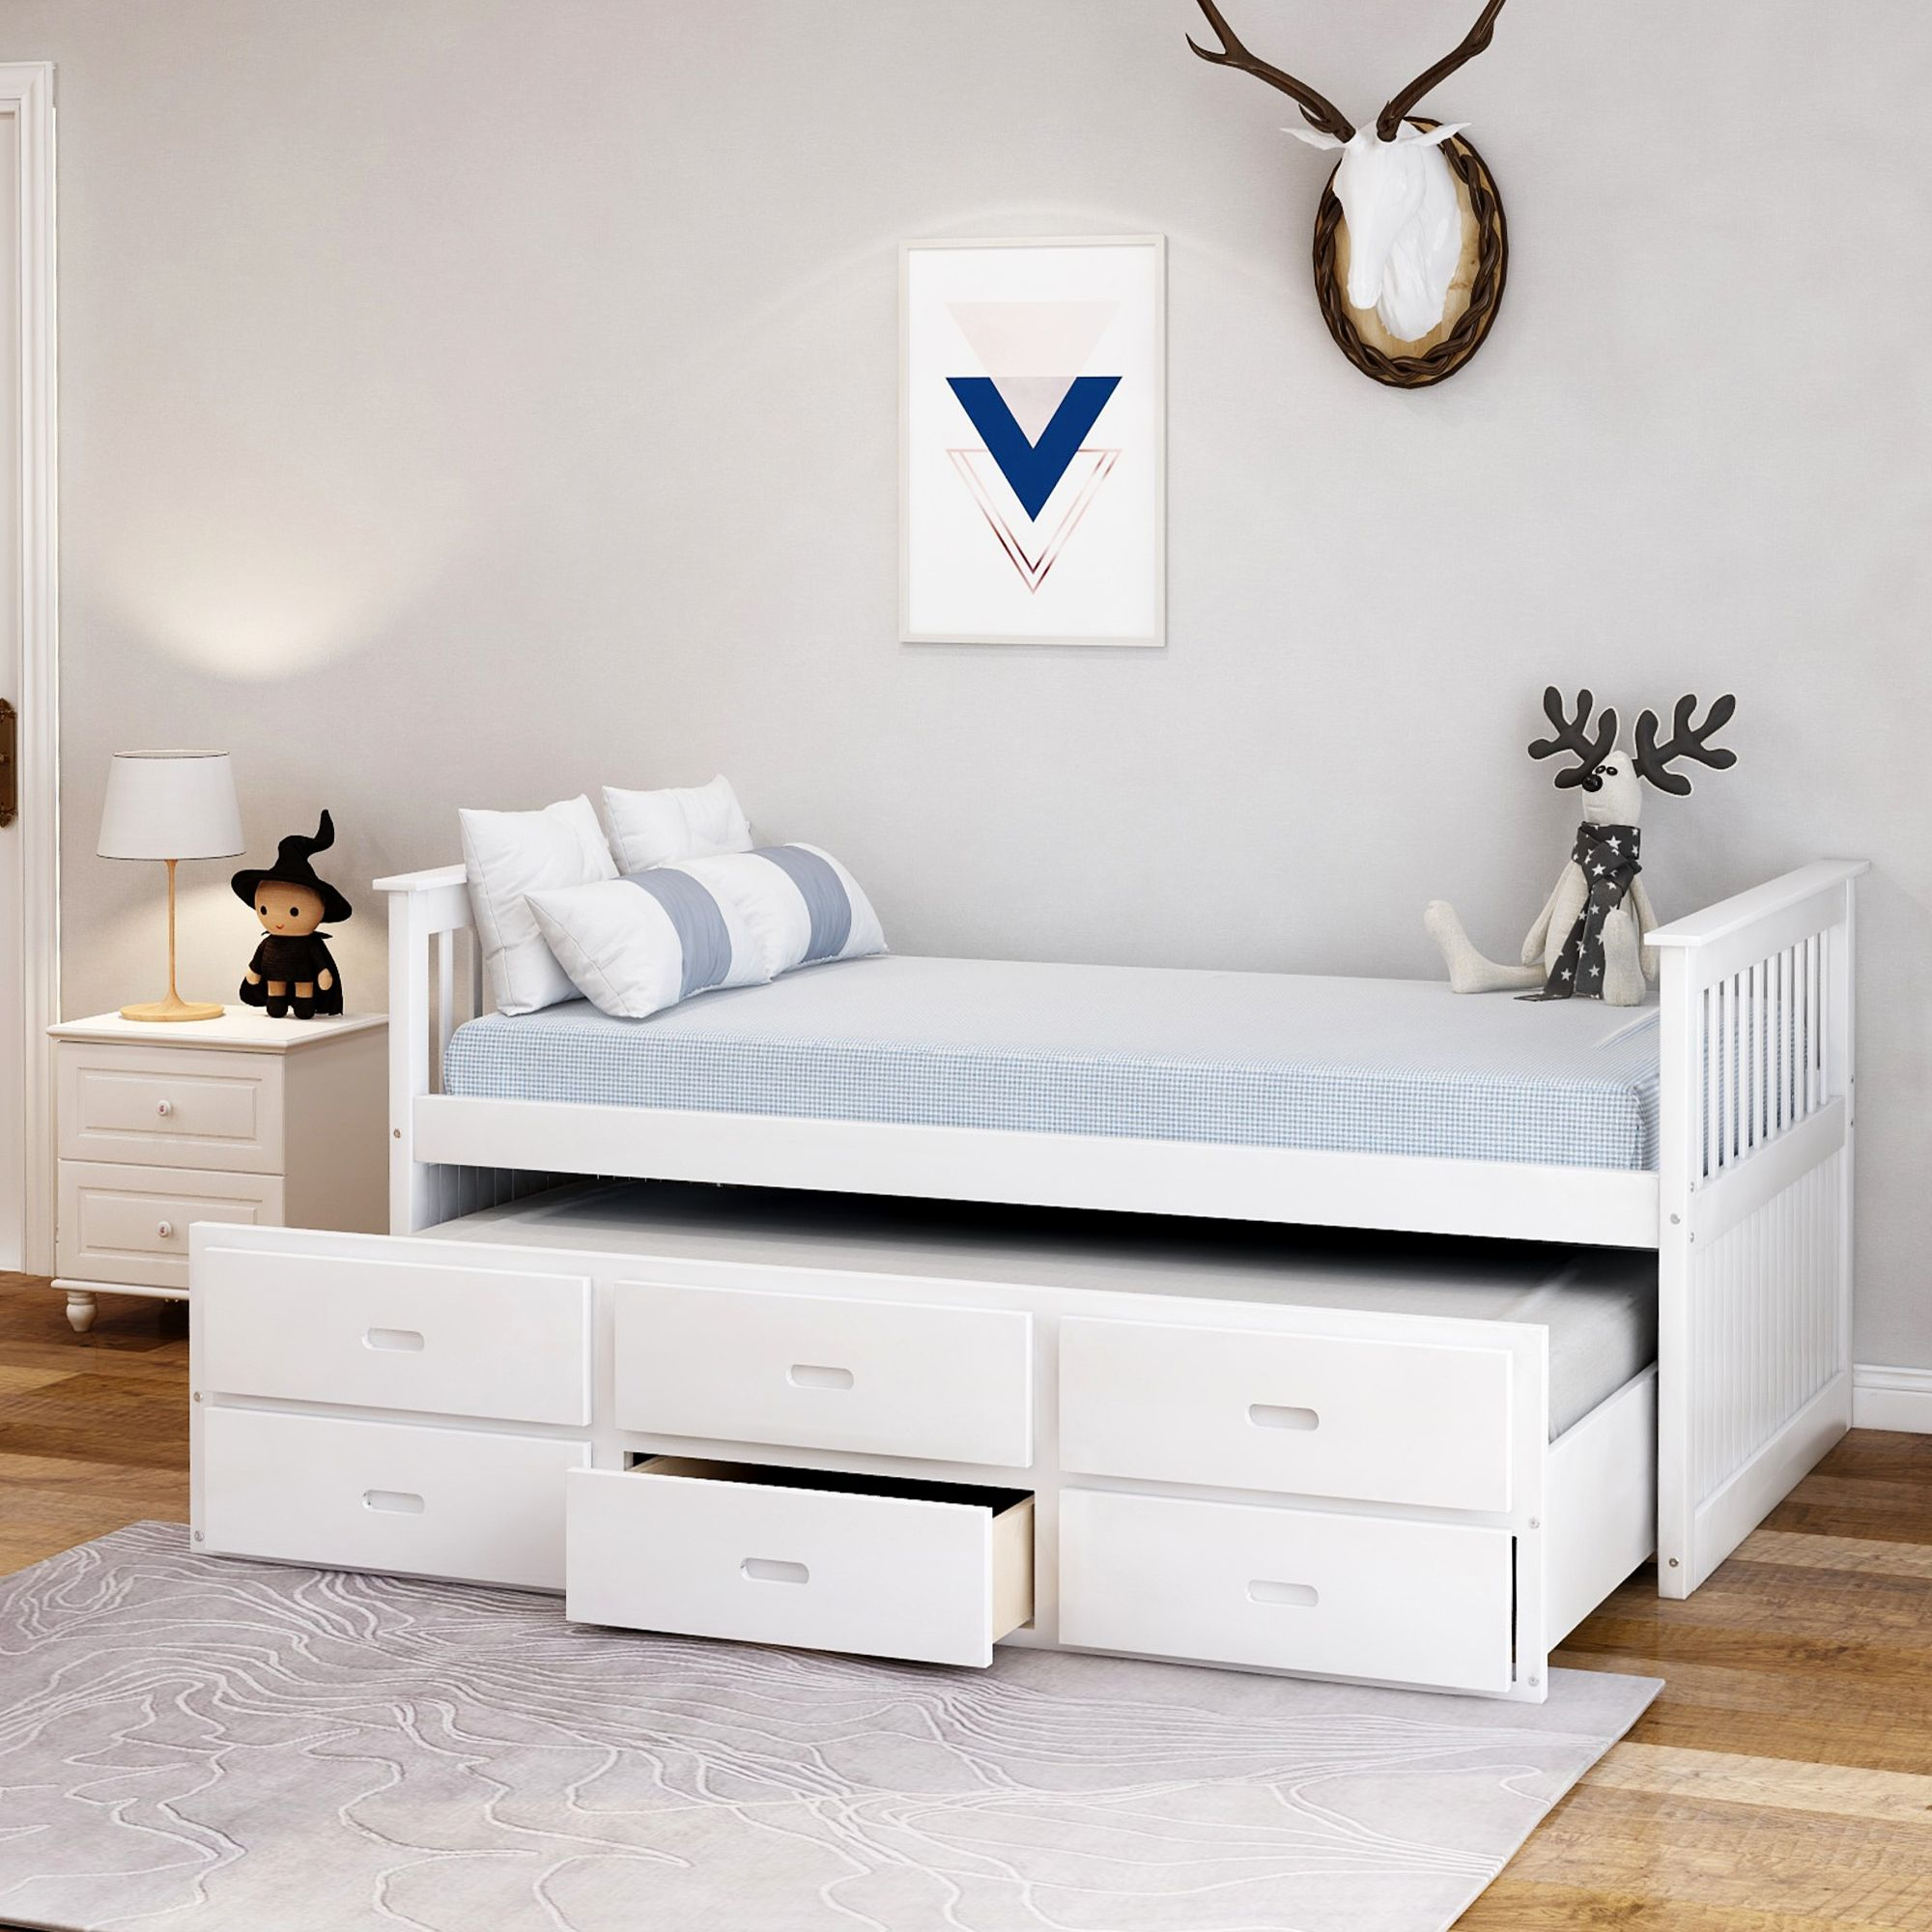 Merax Solid Wood Captain Bed With Trundle And Drawers Twin Multiple Colors Walmart Com Trundle Bed Bed With Drawers Captains Bed Solid wood captain's bed twin